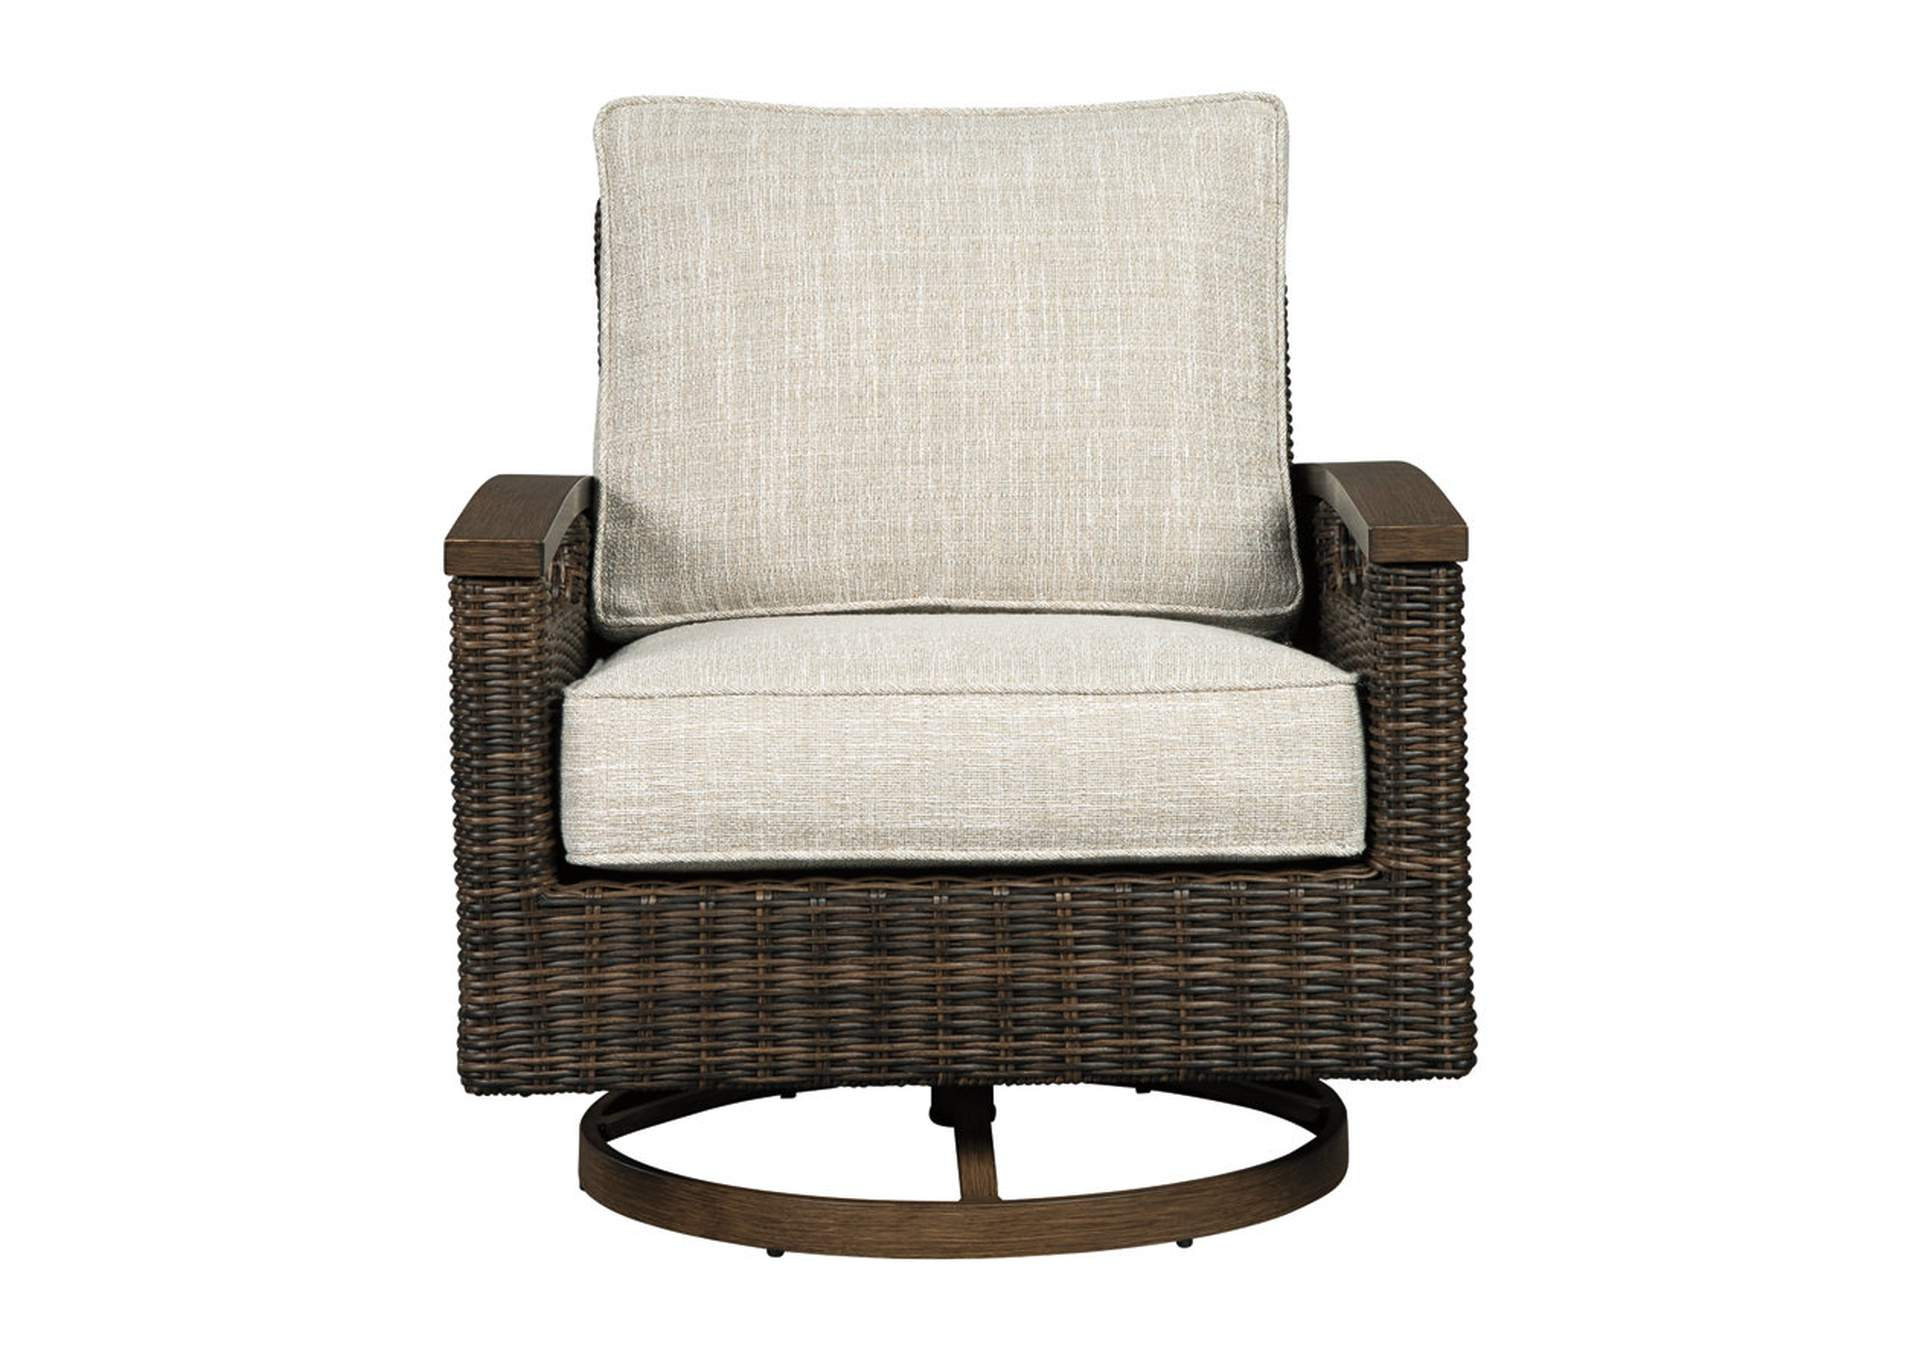 Stupendous Curlys Furniture Paradise Trail Medium Brown Swivel Lounge Caraccident5 Cool Chair Designs And Ideas Caraccident5Info